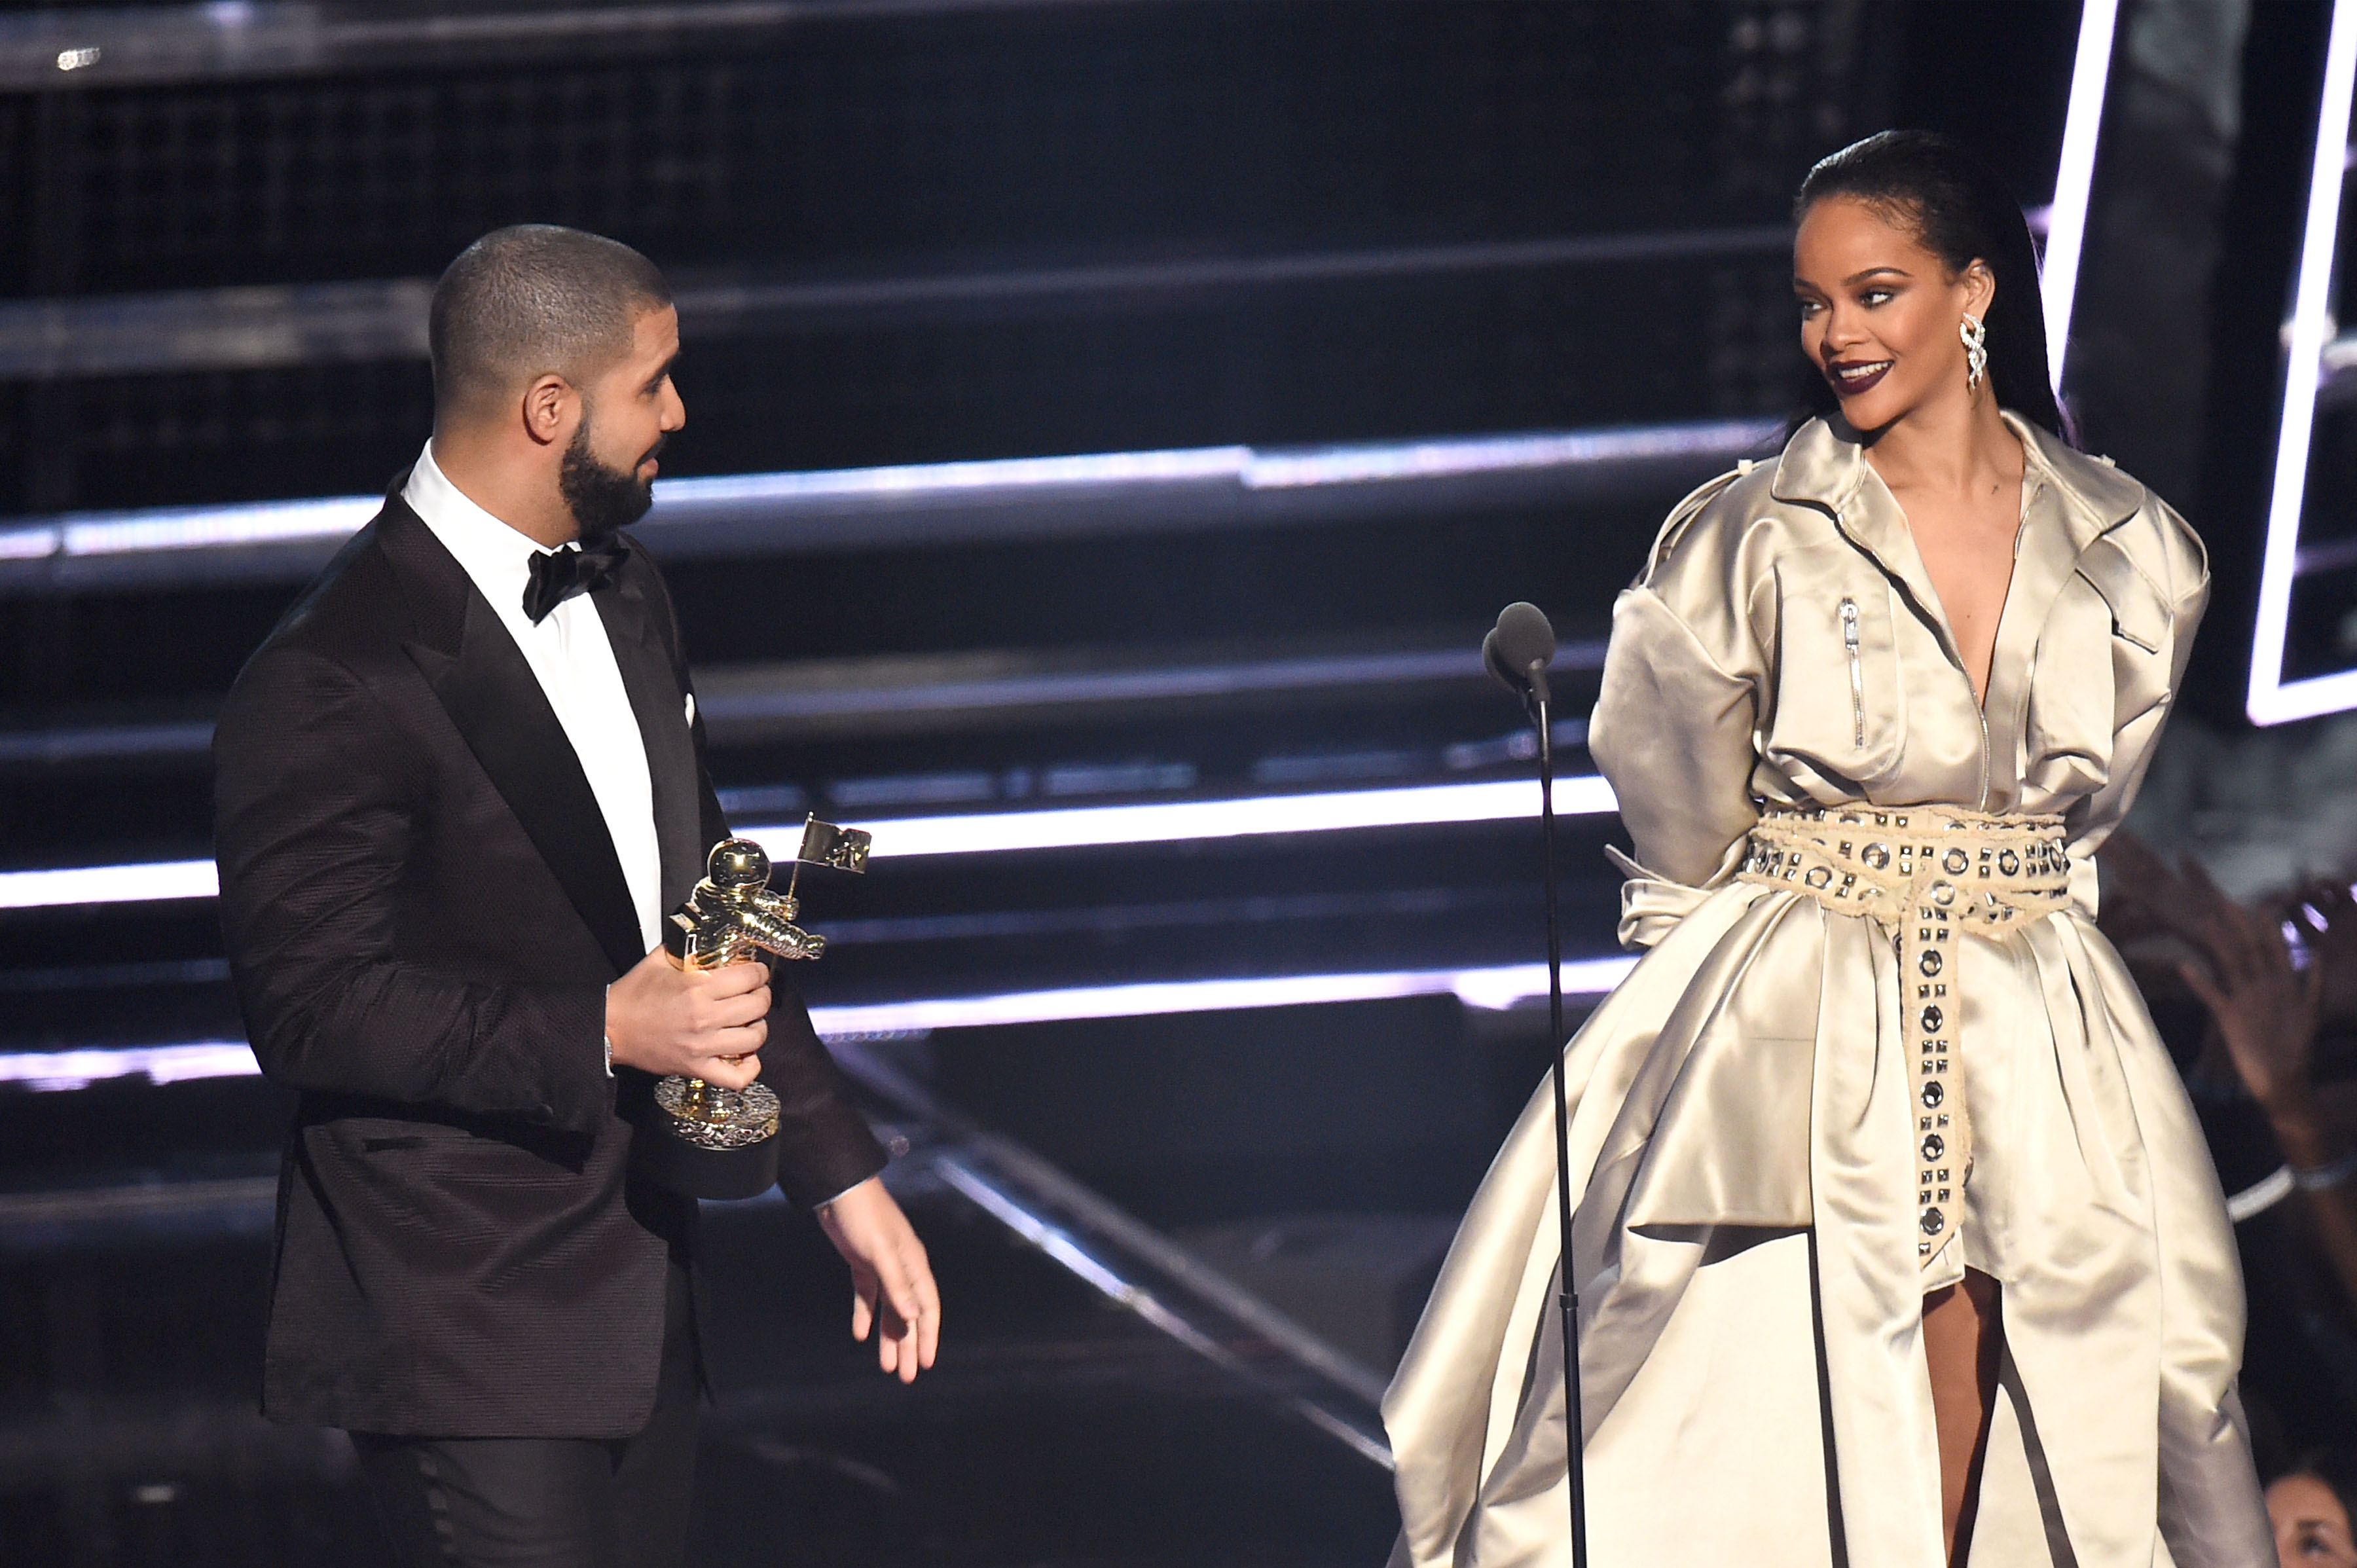 cbc72a18690d3 Rihanna Gets A Shark Tattoo   It Just Might Be A Sweet Depiction Of Her  Relationship With Drake — PHOTO